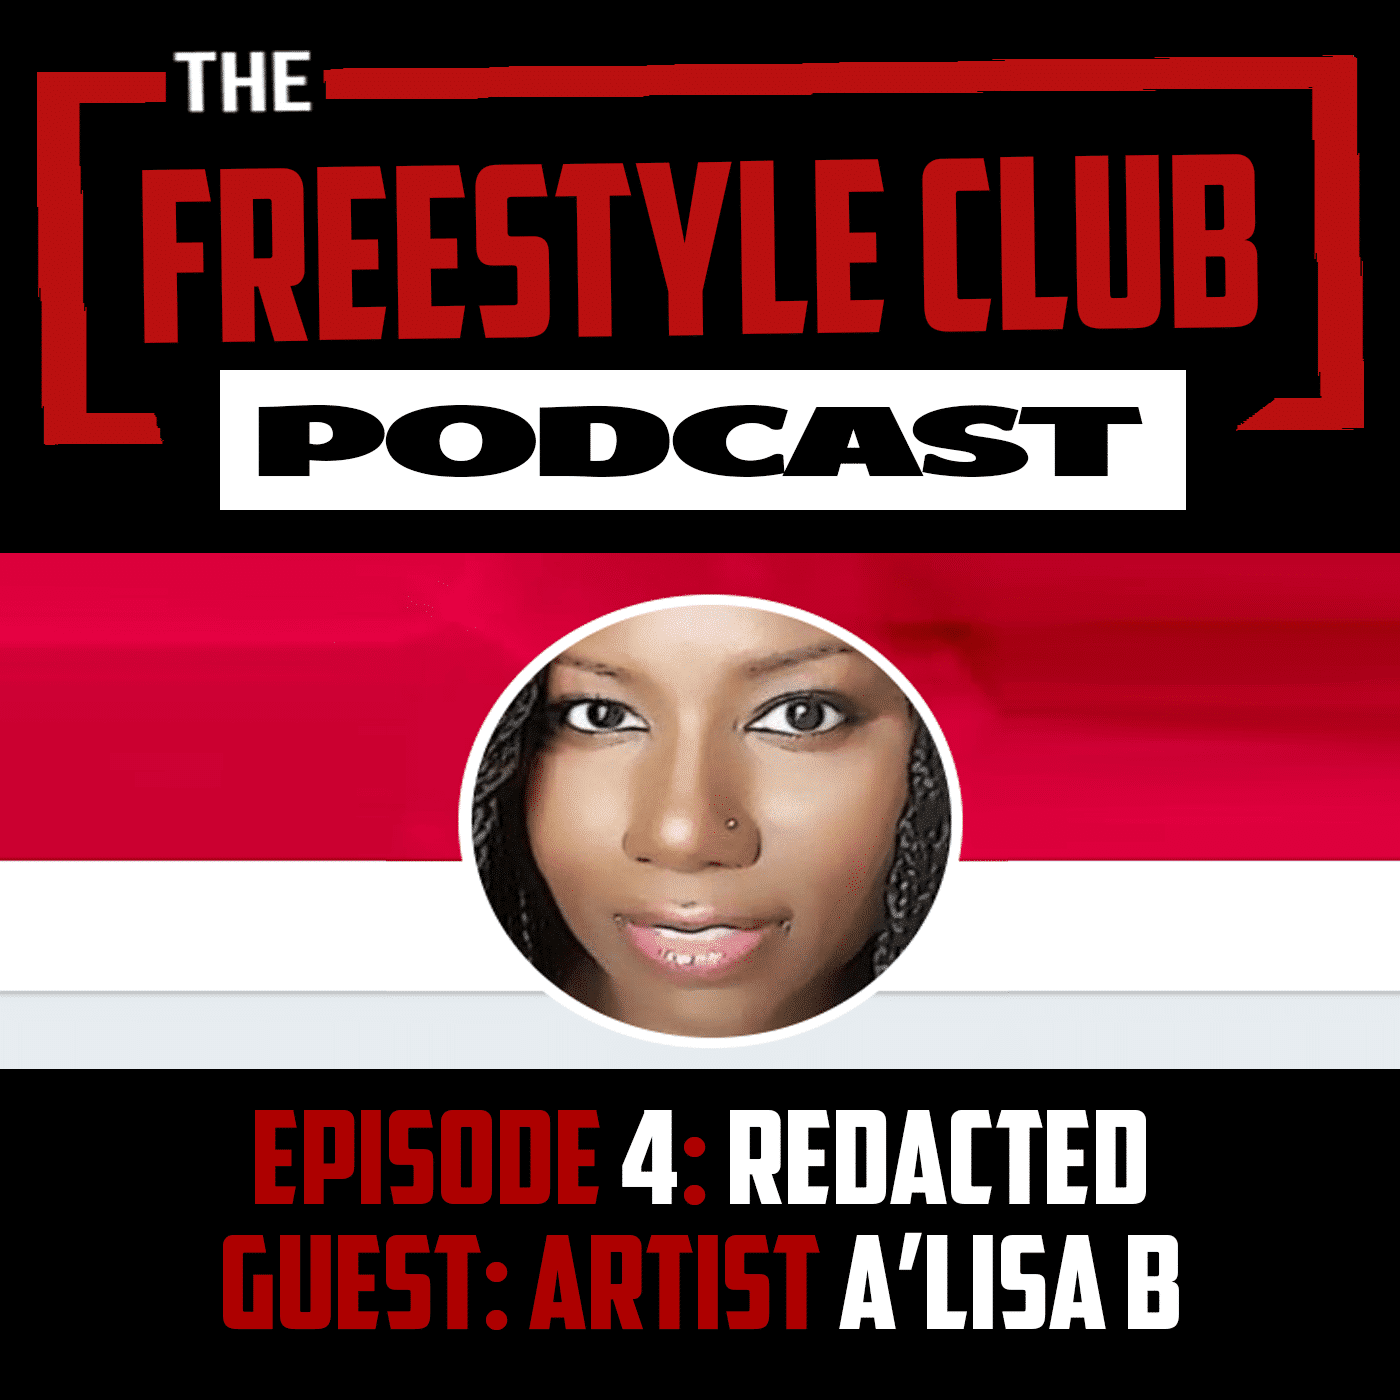 The Freestyle Club Episode 4